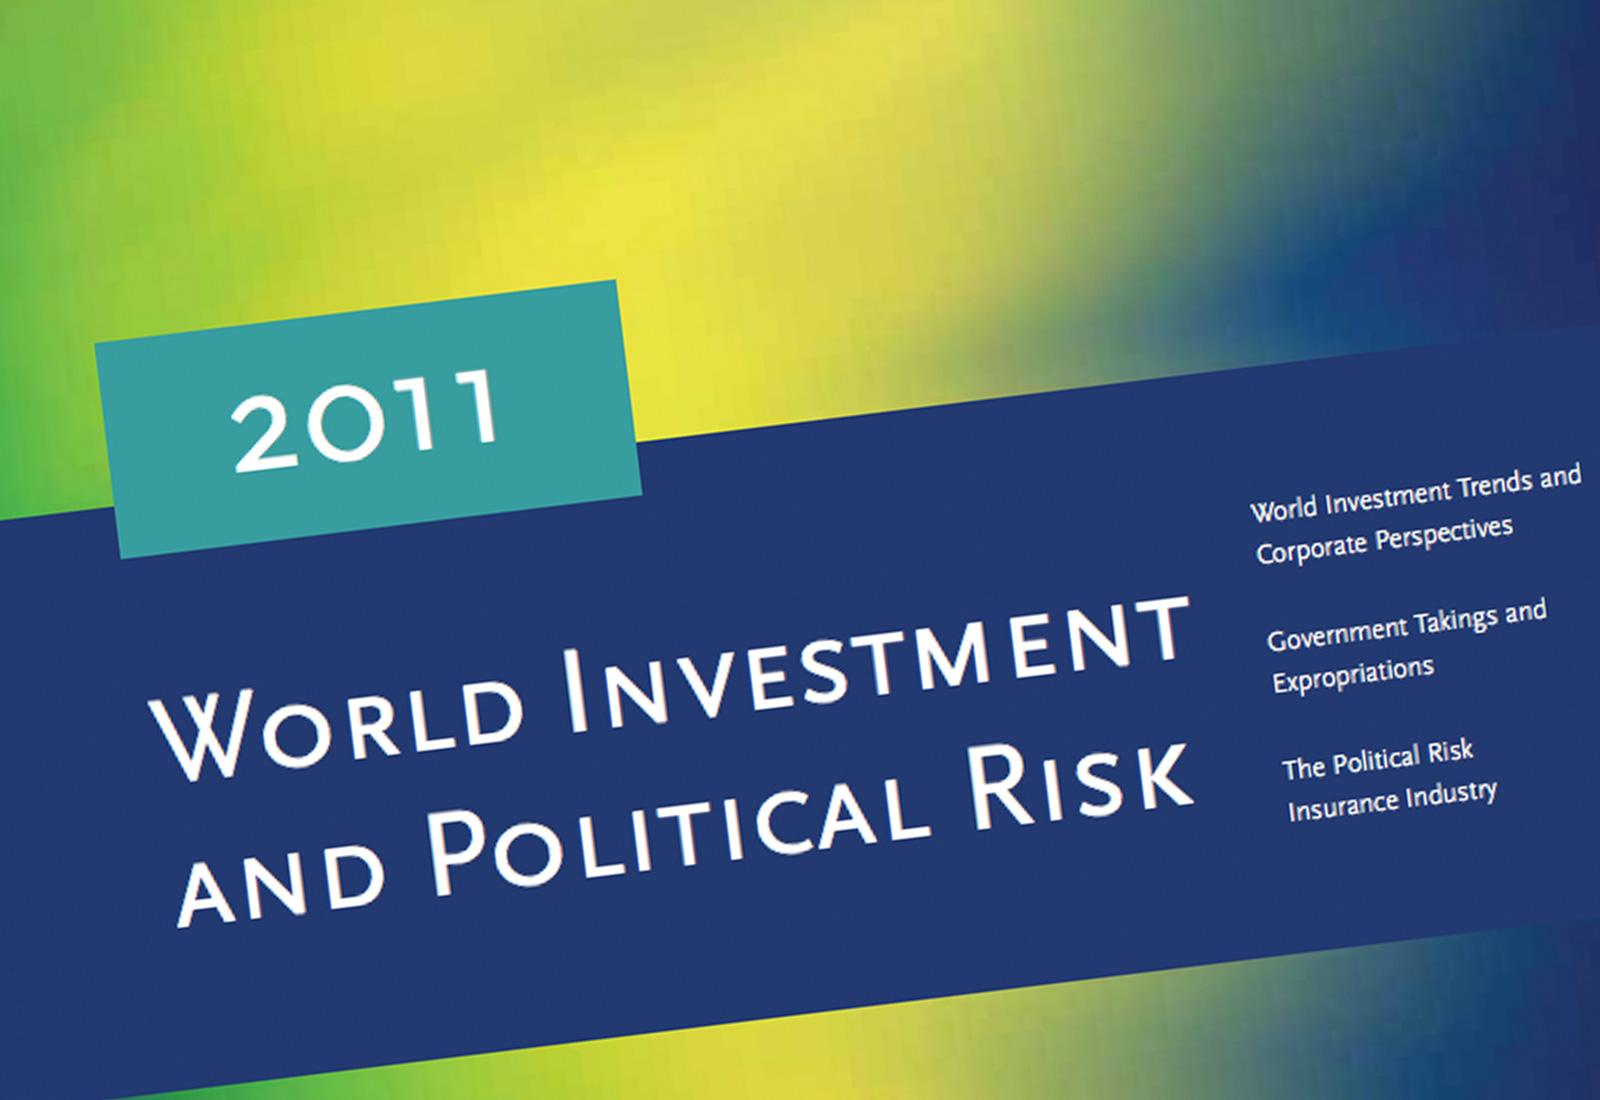 World Investment and Political Risk 2011